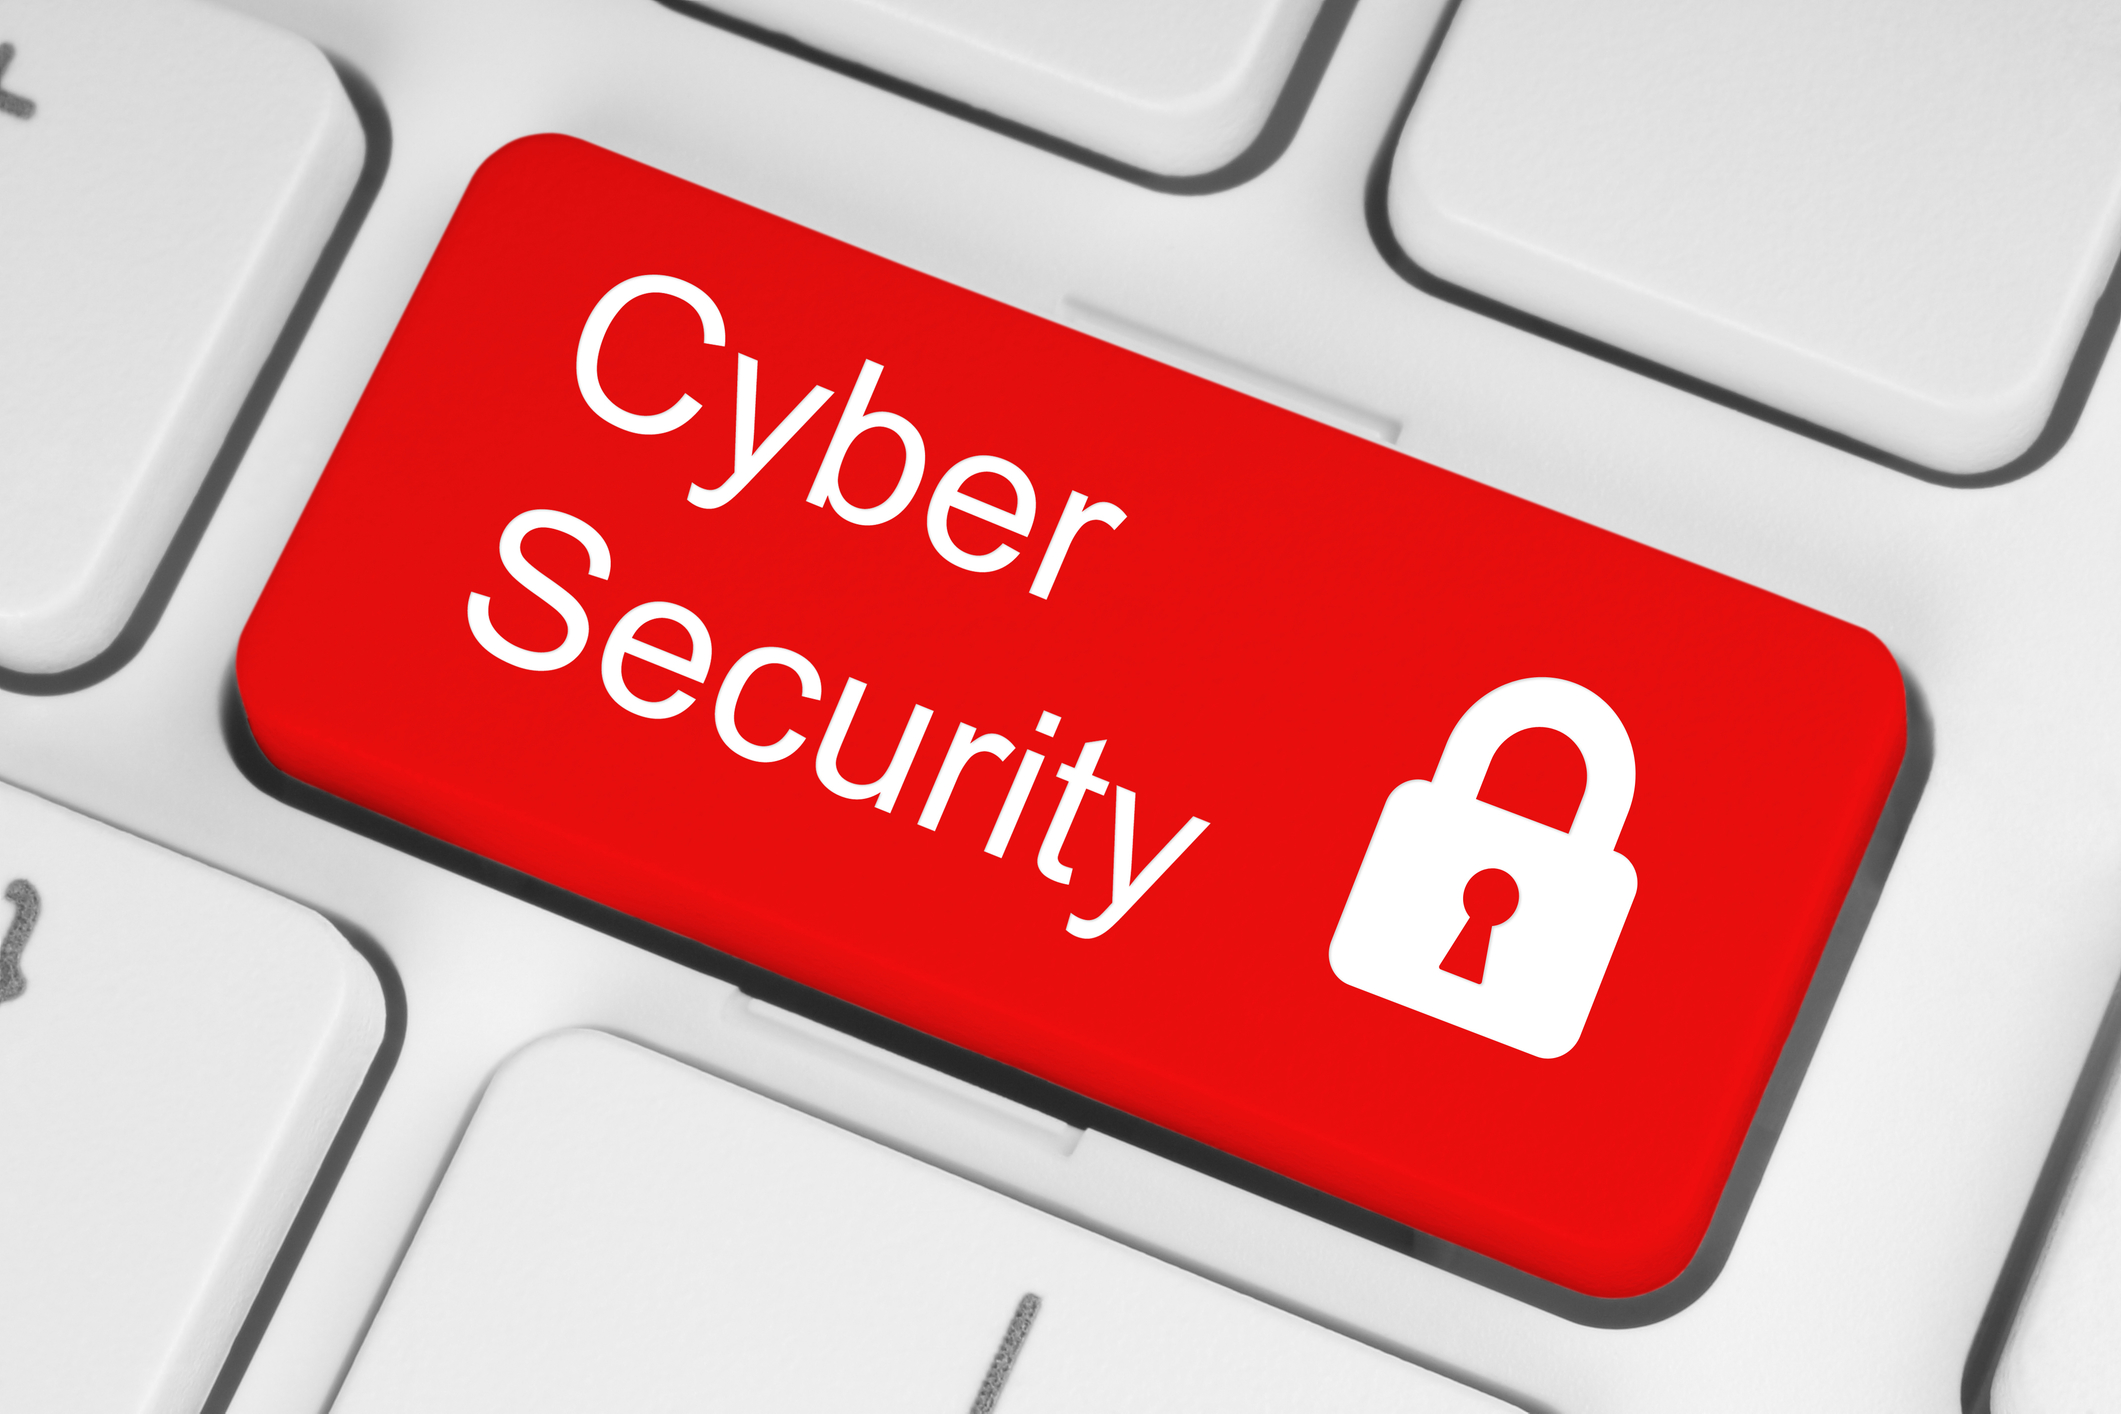 © Rvlsoft cyber security33359901